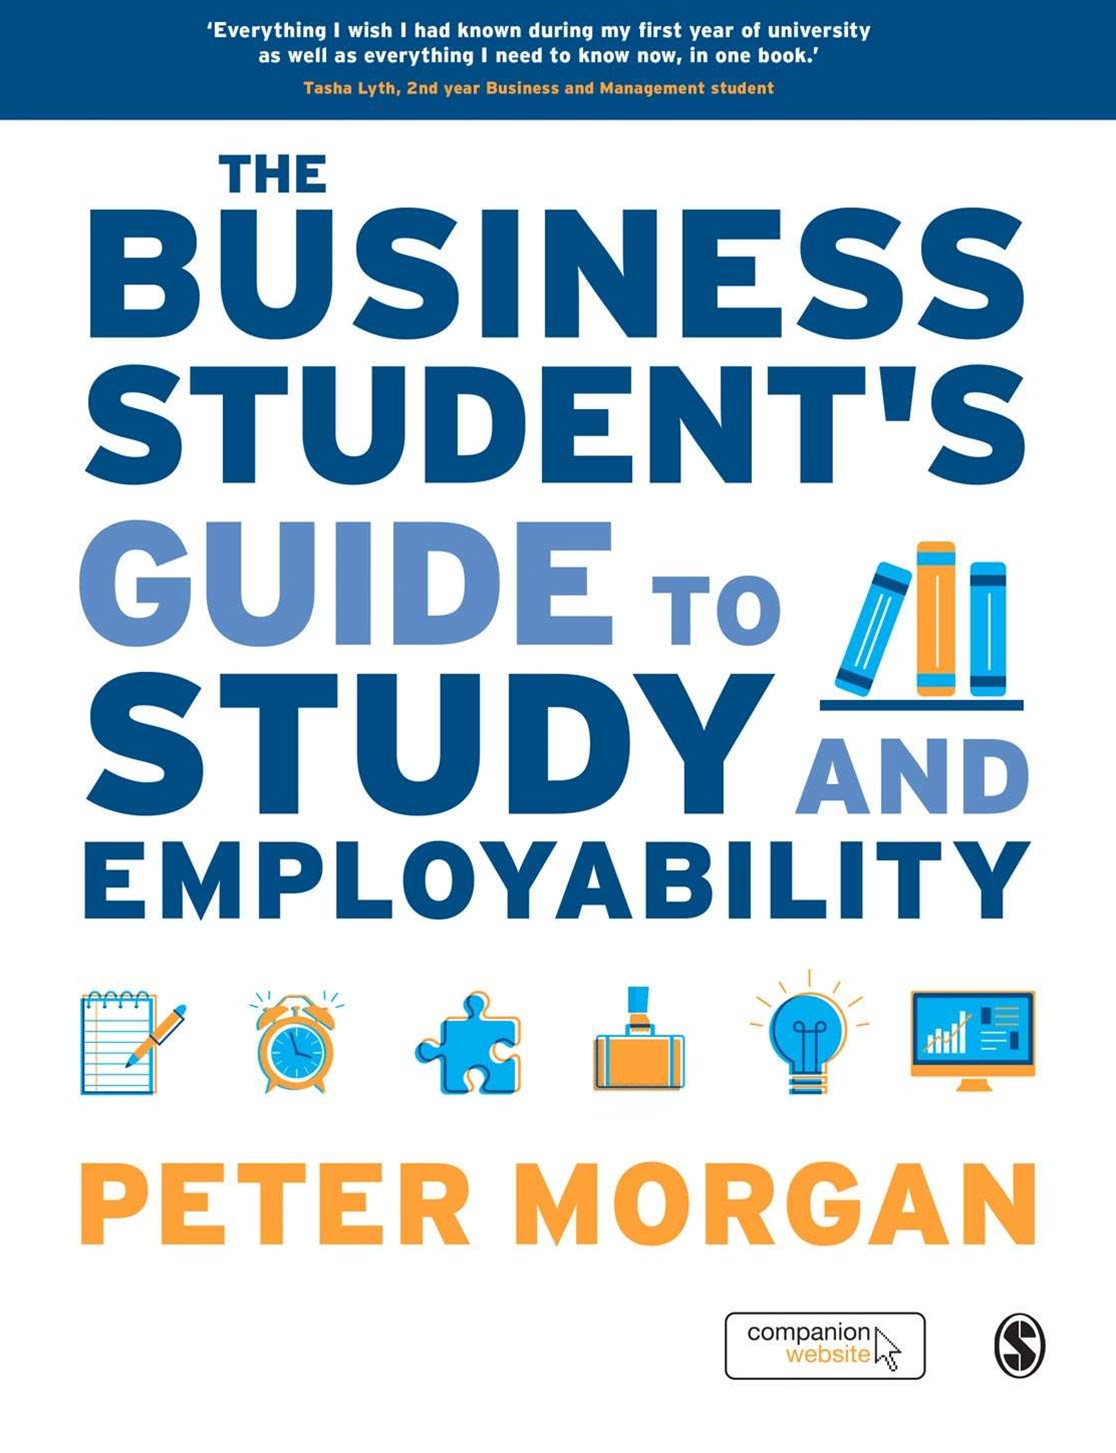 Business Student's Guide to Study and Employability